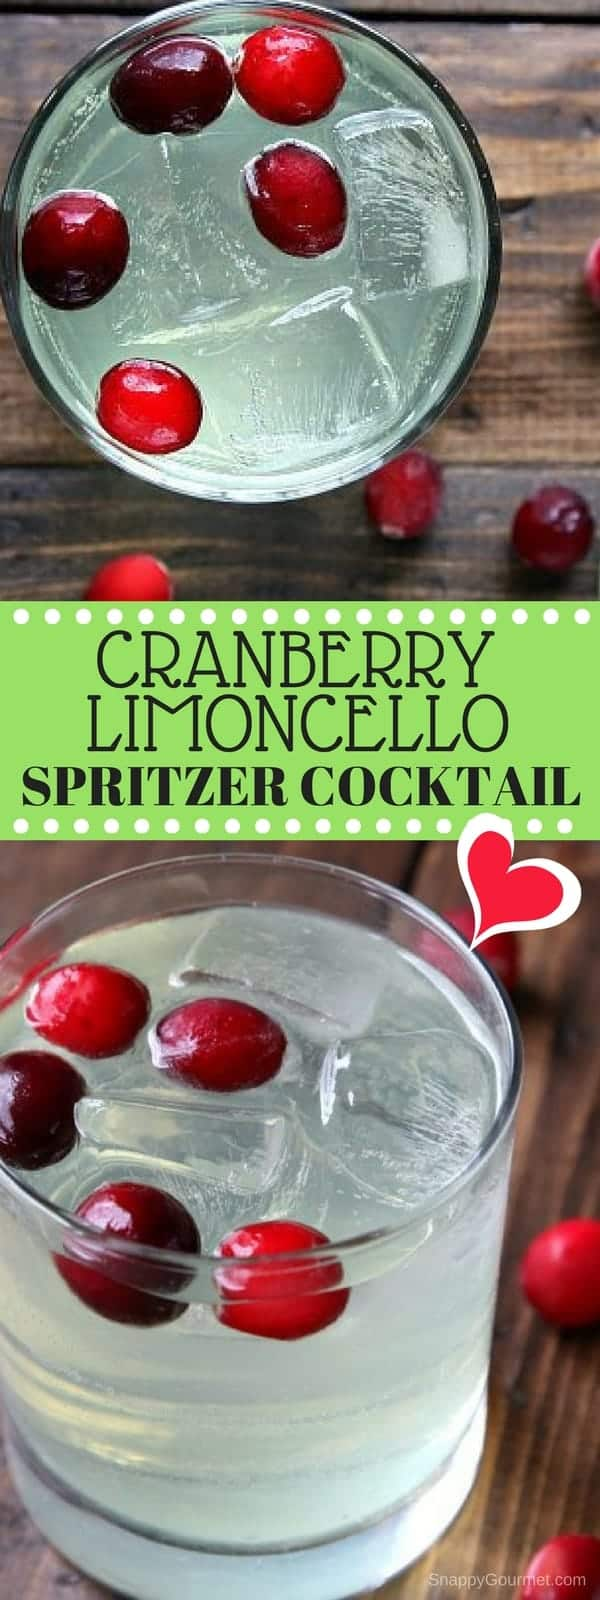 Cranberry Limoncello Spritzer Cocktail recipe - fun Italian cocktail and unique Italian spritzer! SnappyGourmet.com